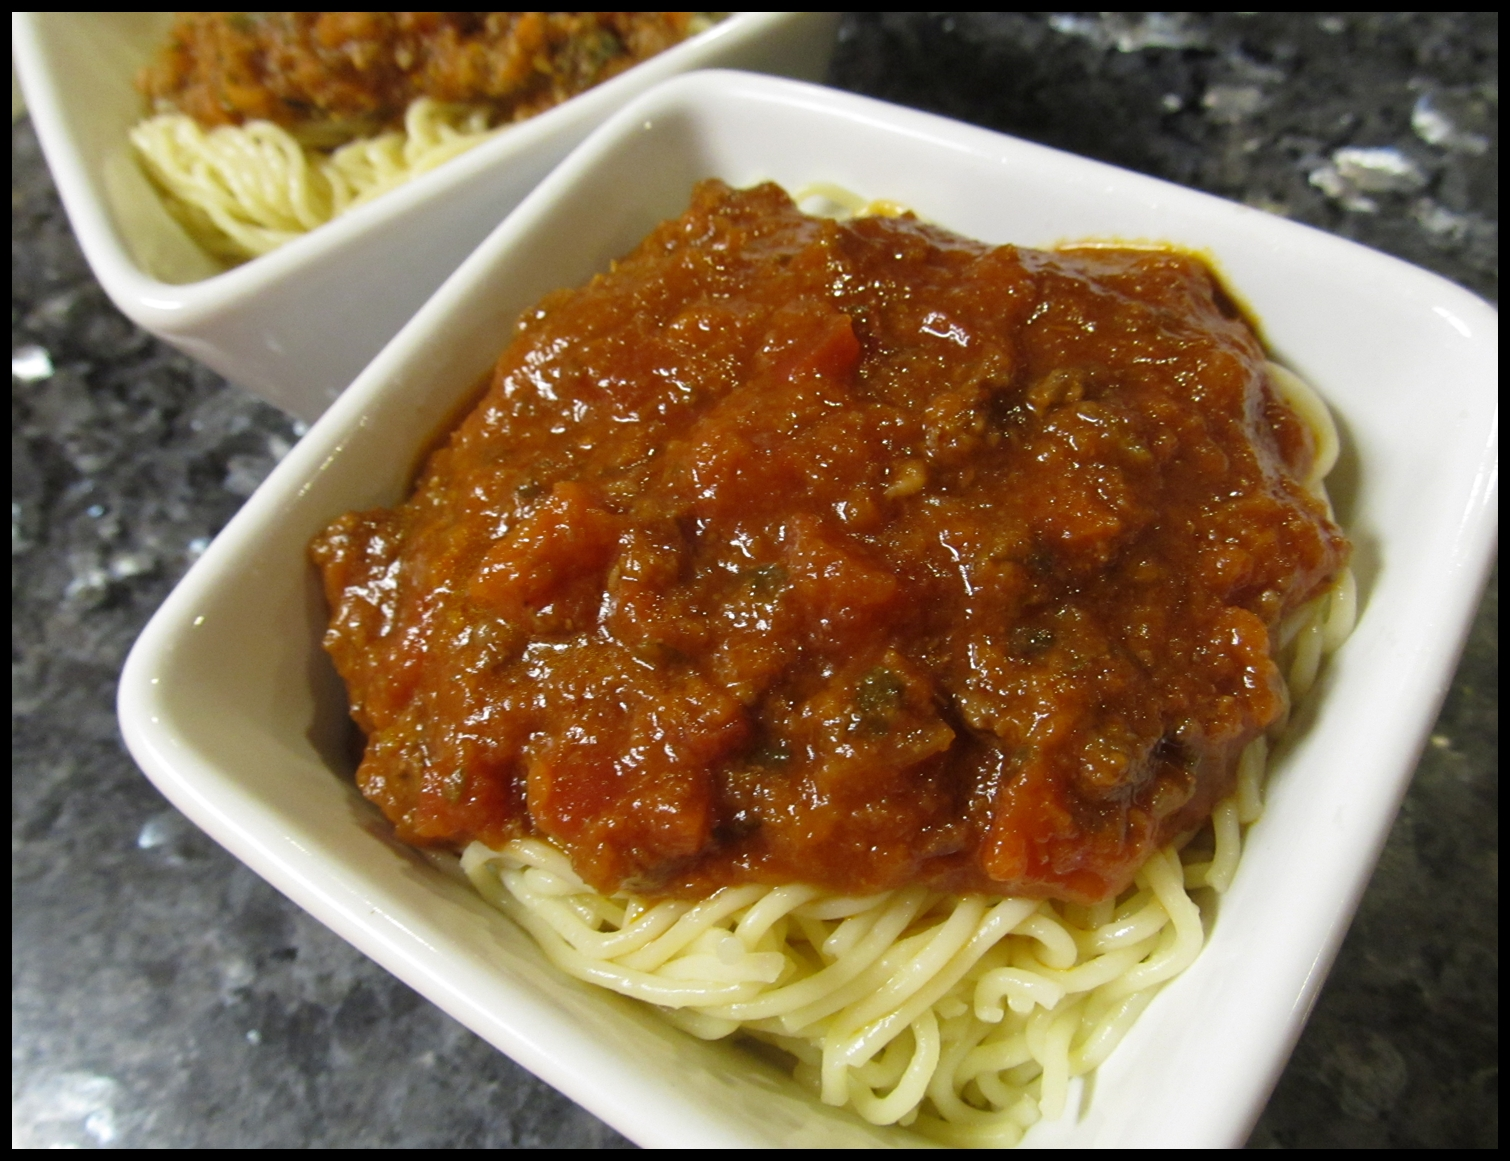 ... Bolognese recipe. I have been looking and searching for a Bolognese